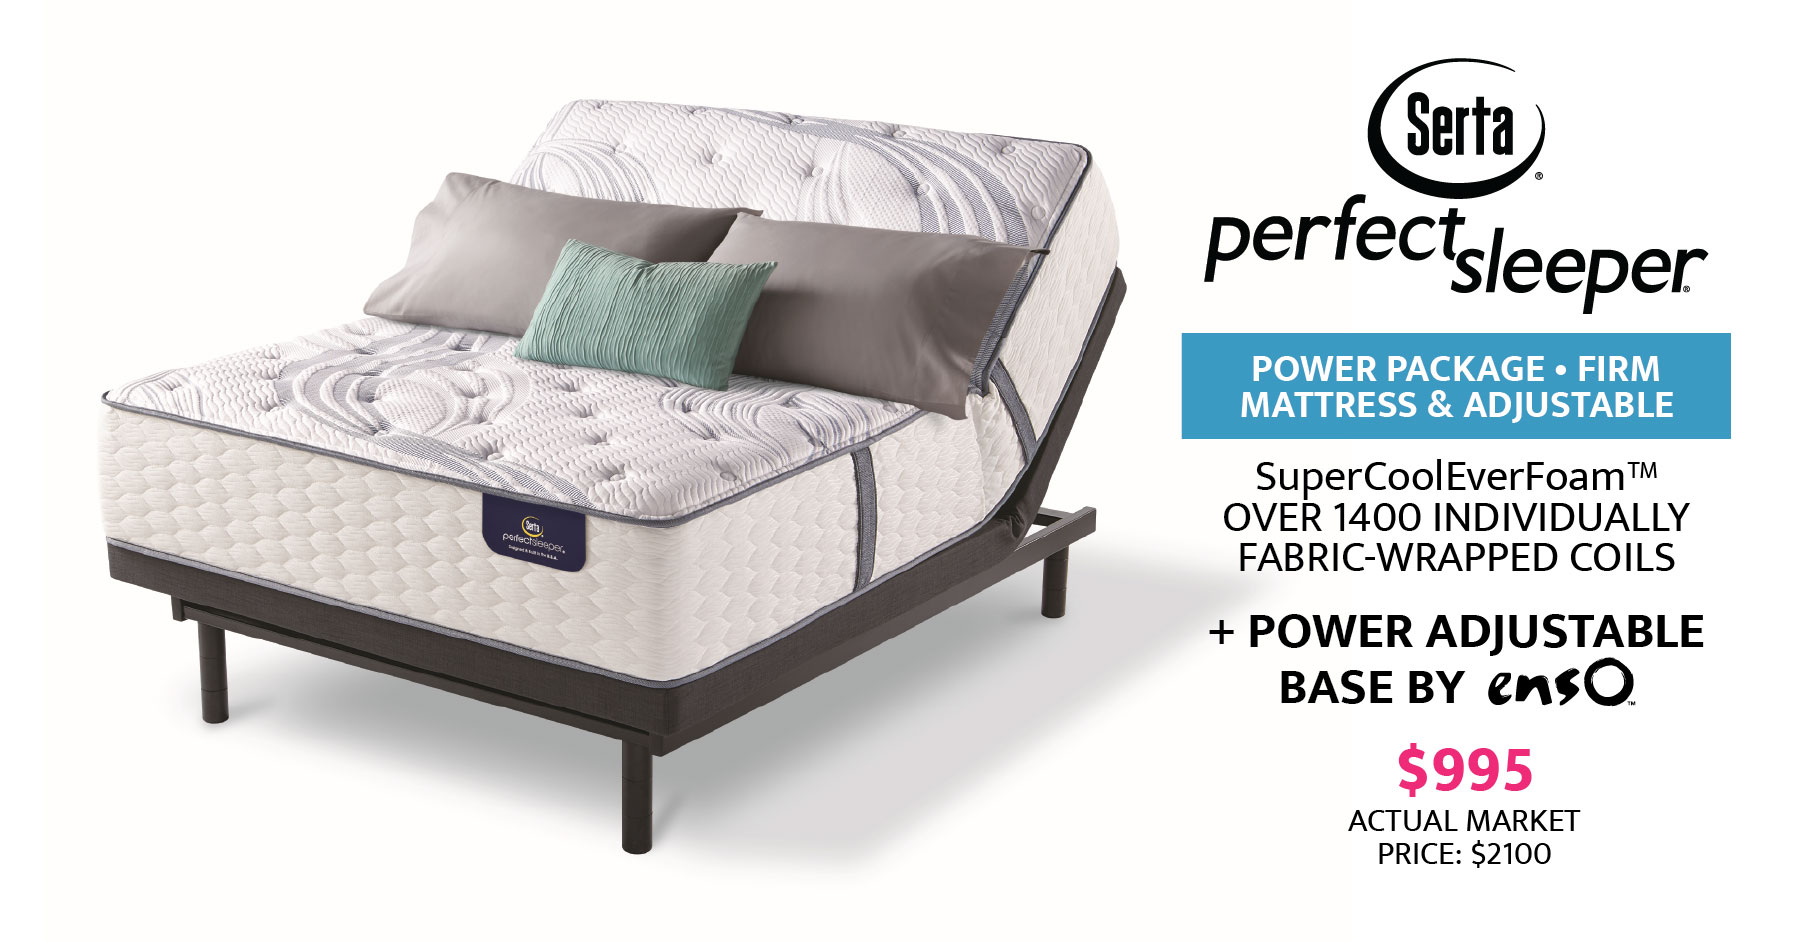 Serta Perfect Sleeper and Power Adjustable Base $995